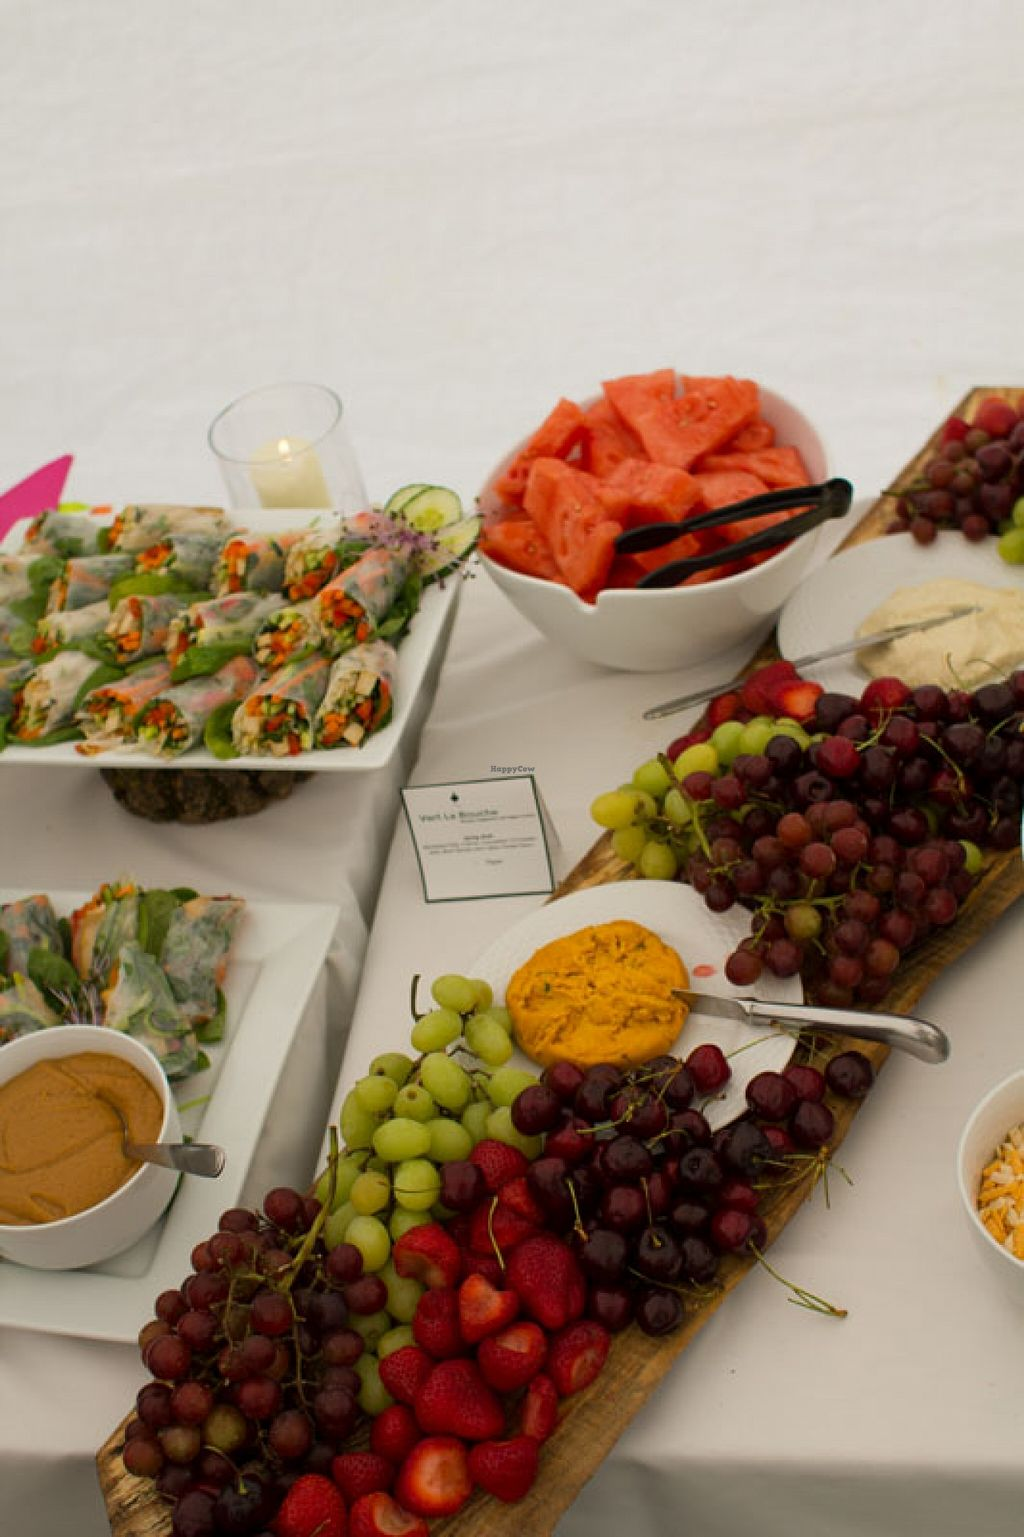 """Photo of Vert La Bouche  by <a href=""""/members/profile/badvegancook"""">badvegancook</a> <br/>Spring rolls and cheese platters <br/> September 27, 2015  - <a href='/contact/abuse/image/50052/119338'>Report</a>"""